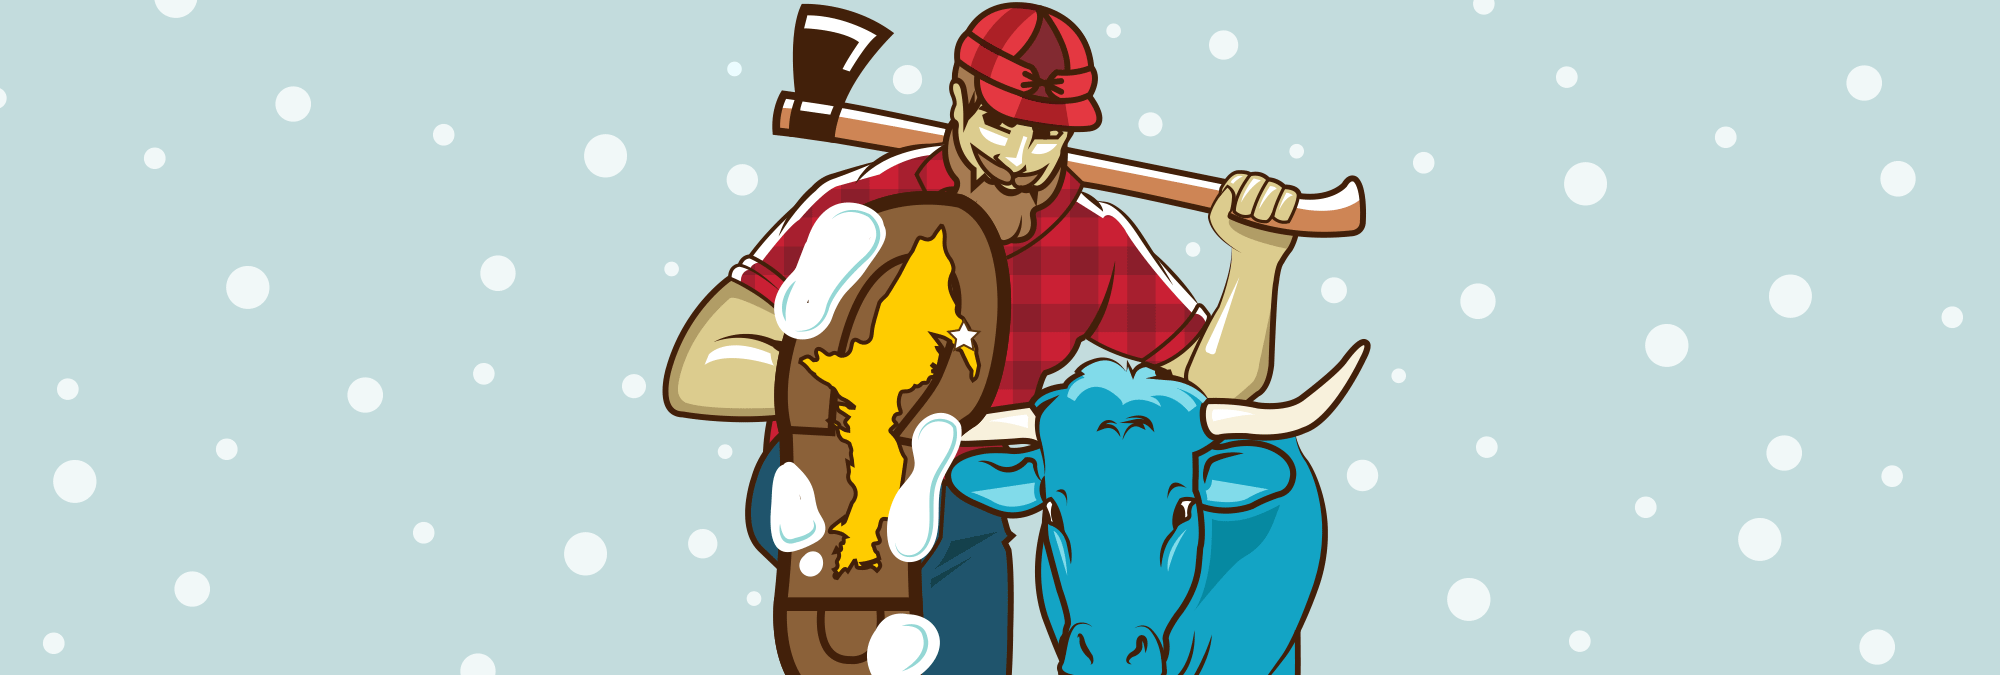 Illustration of Paul Bunyan and Babe the Blue Ox